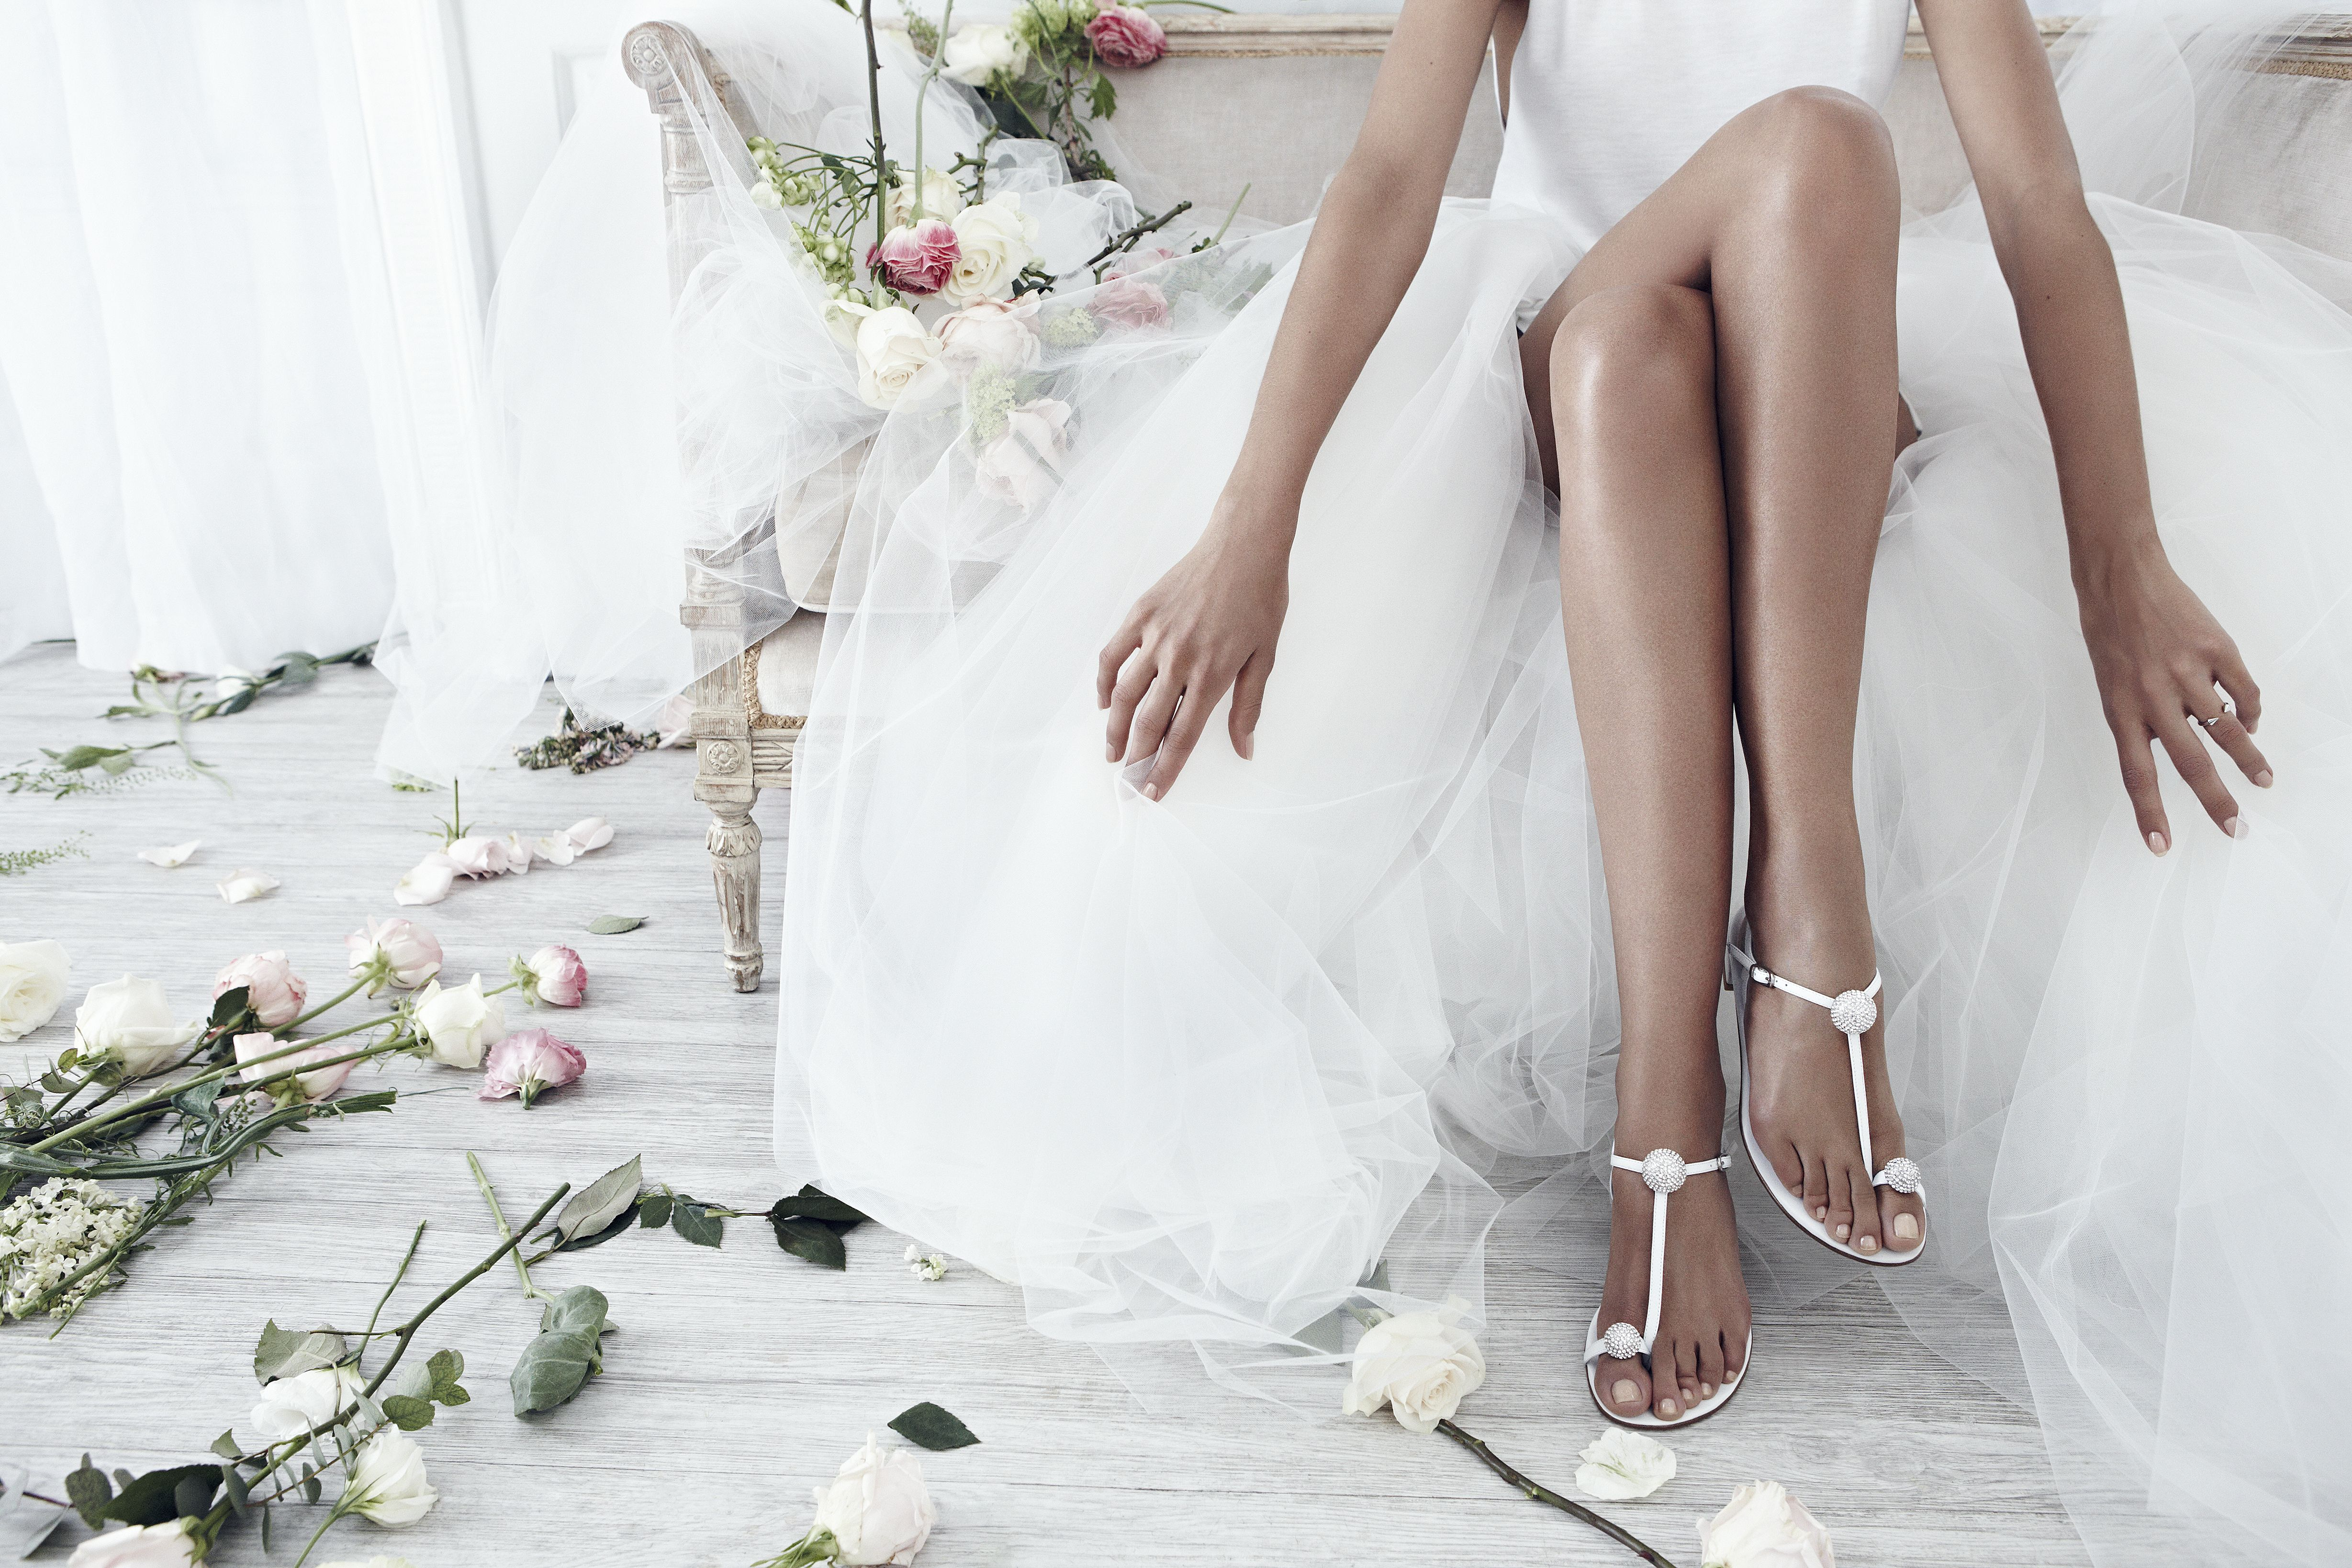 The stuart weitzman bridal collection has arrived calling all boho